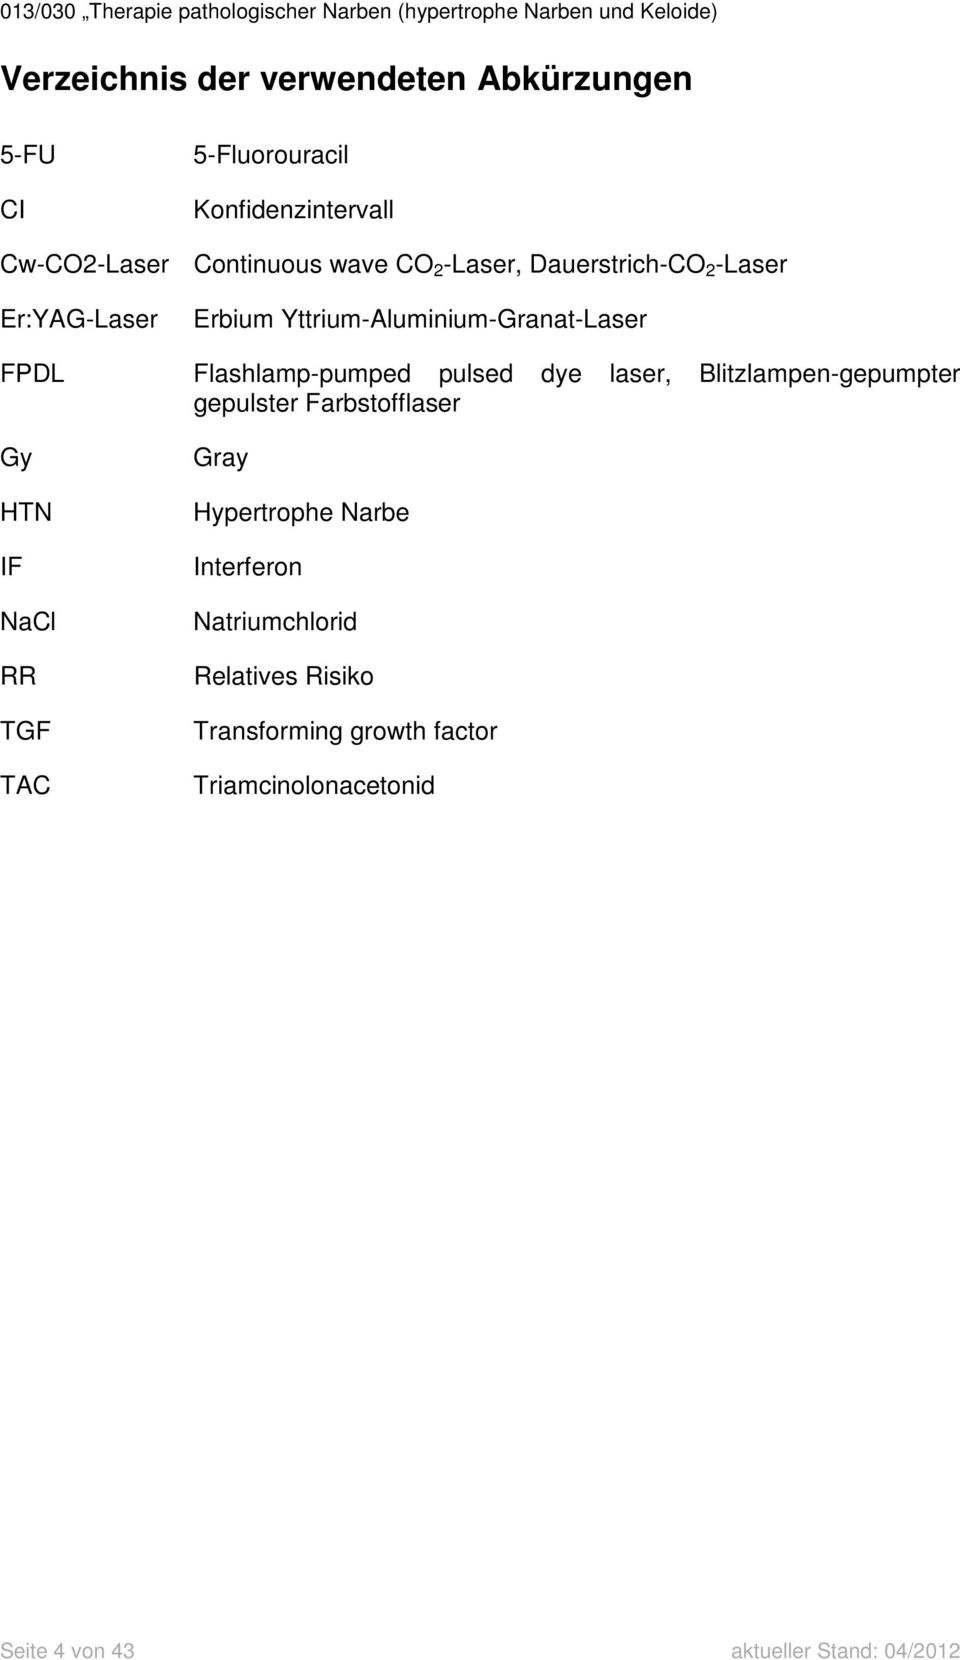 laser, Blitzlampen-gepumpter gepulster Farbstofflaser Gy HTN IF NaCl RR TGF TAC Gray Hypertrophe Narbe Interferon